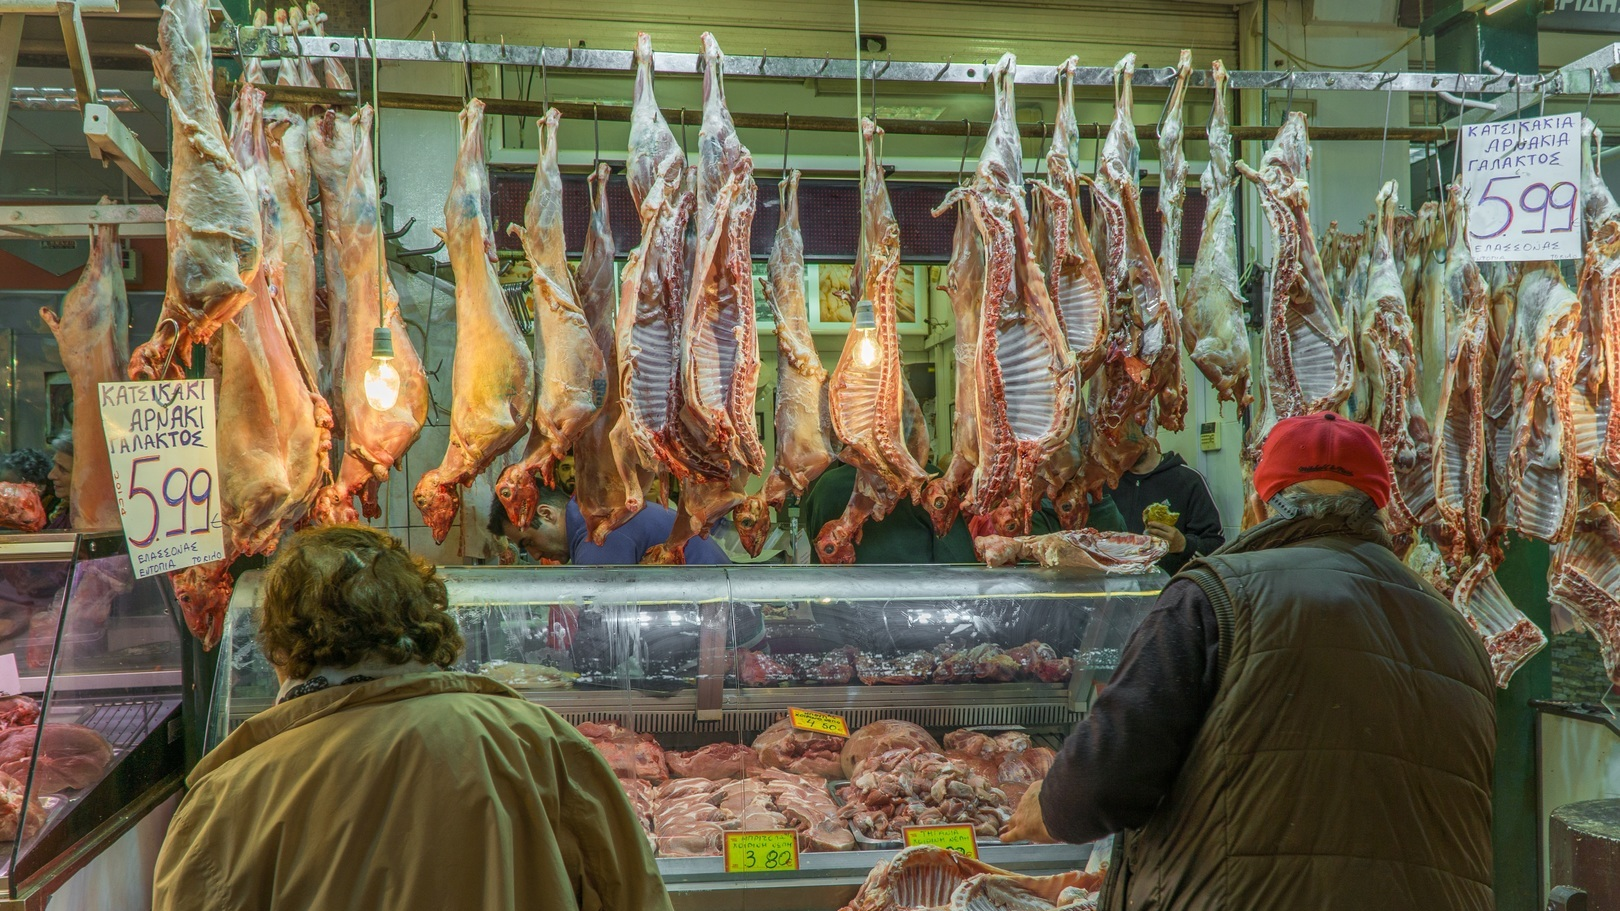 Butcher customers goat meat market market hall meat market 1366425 pxhere.com